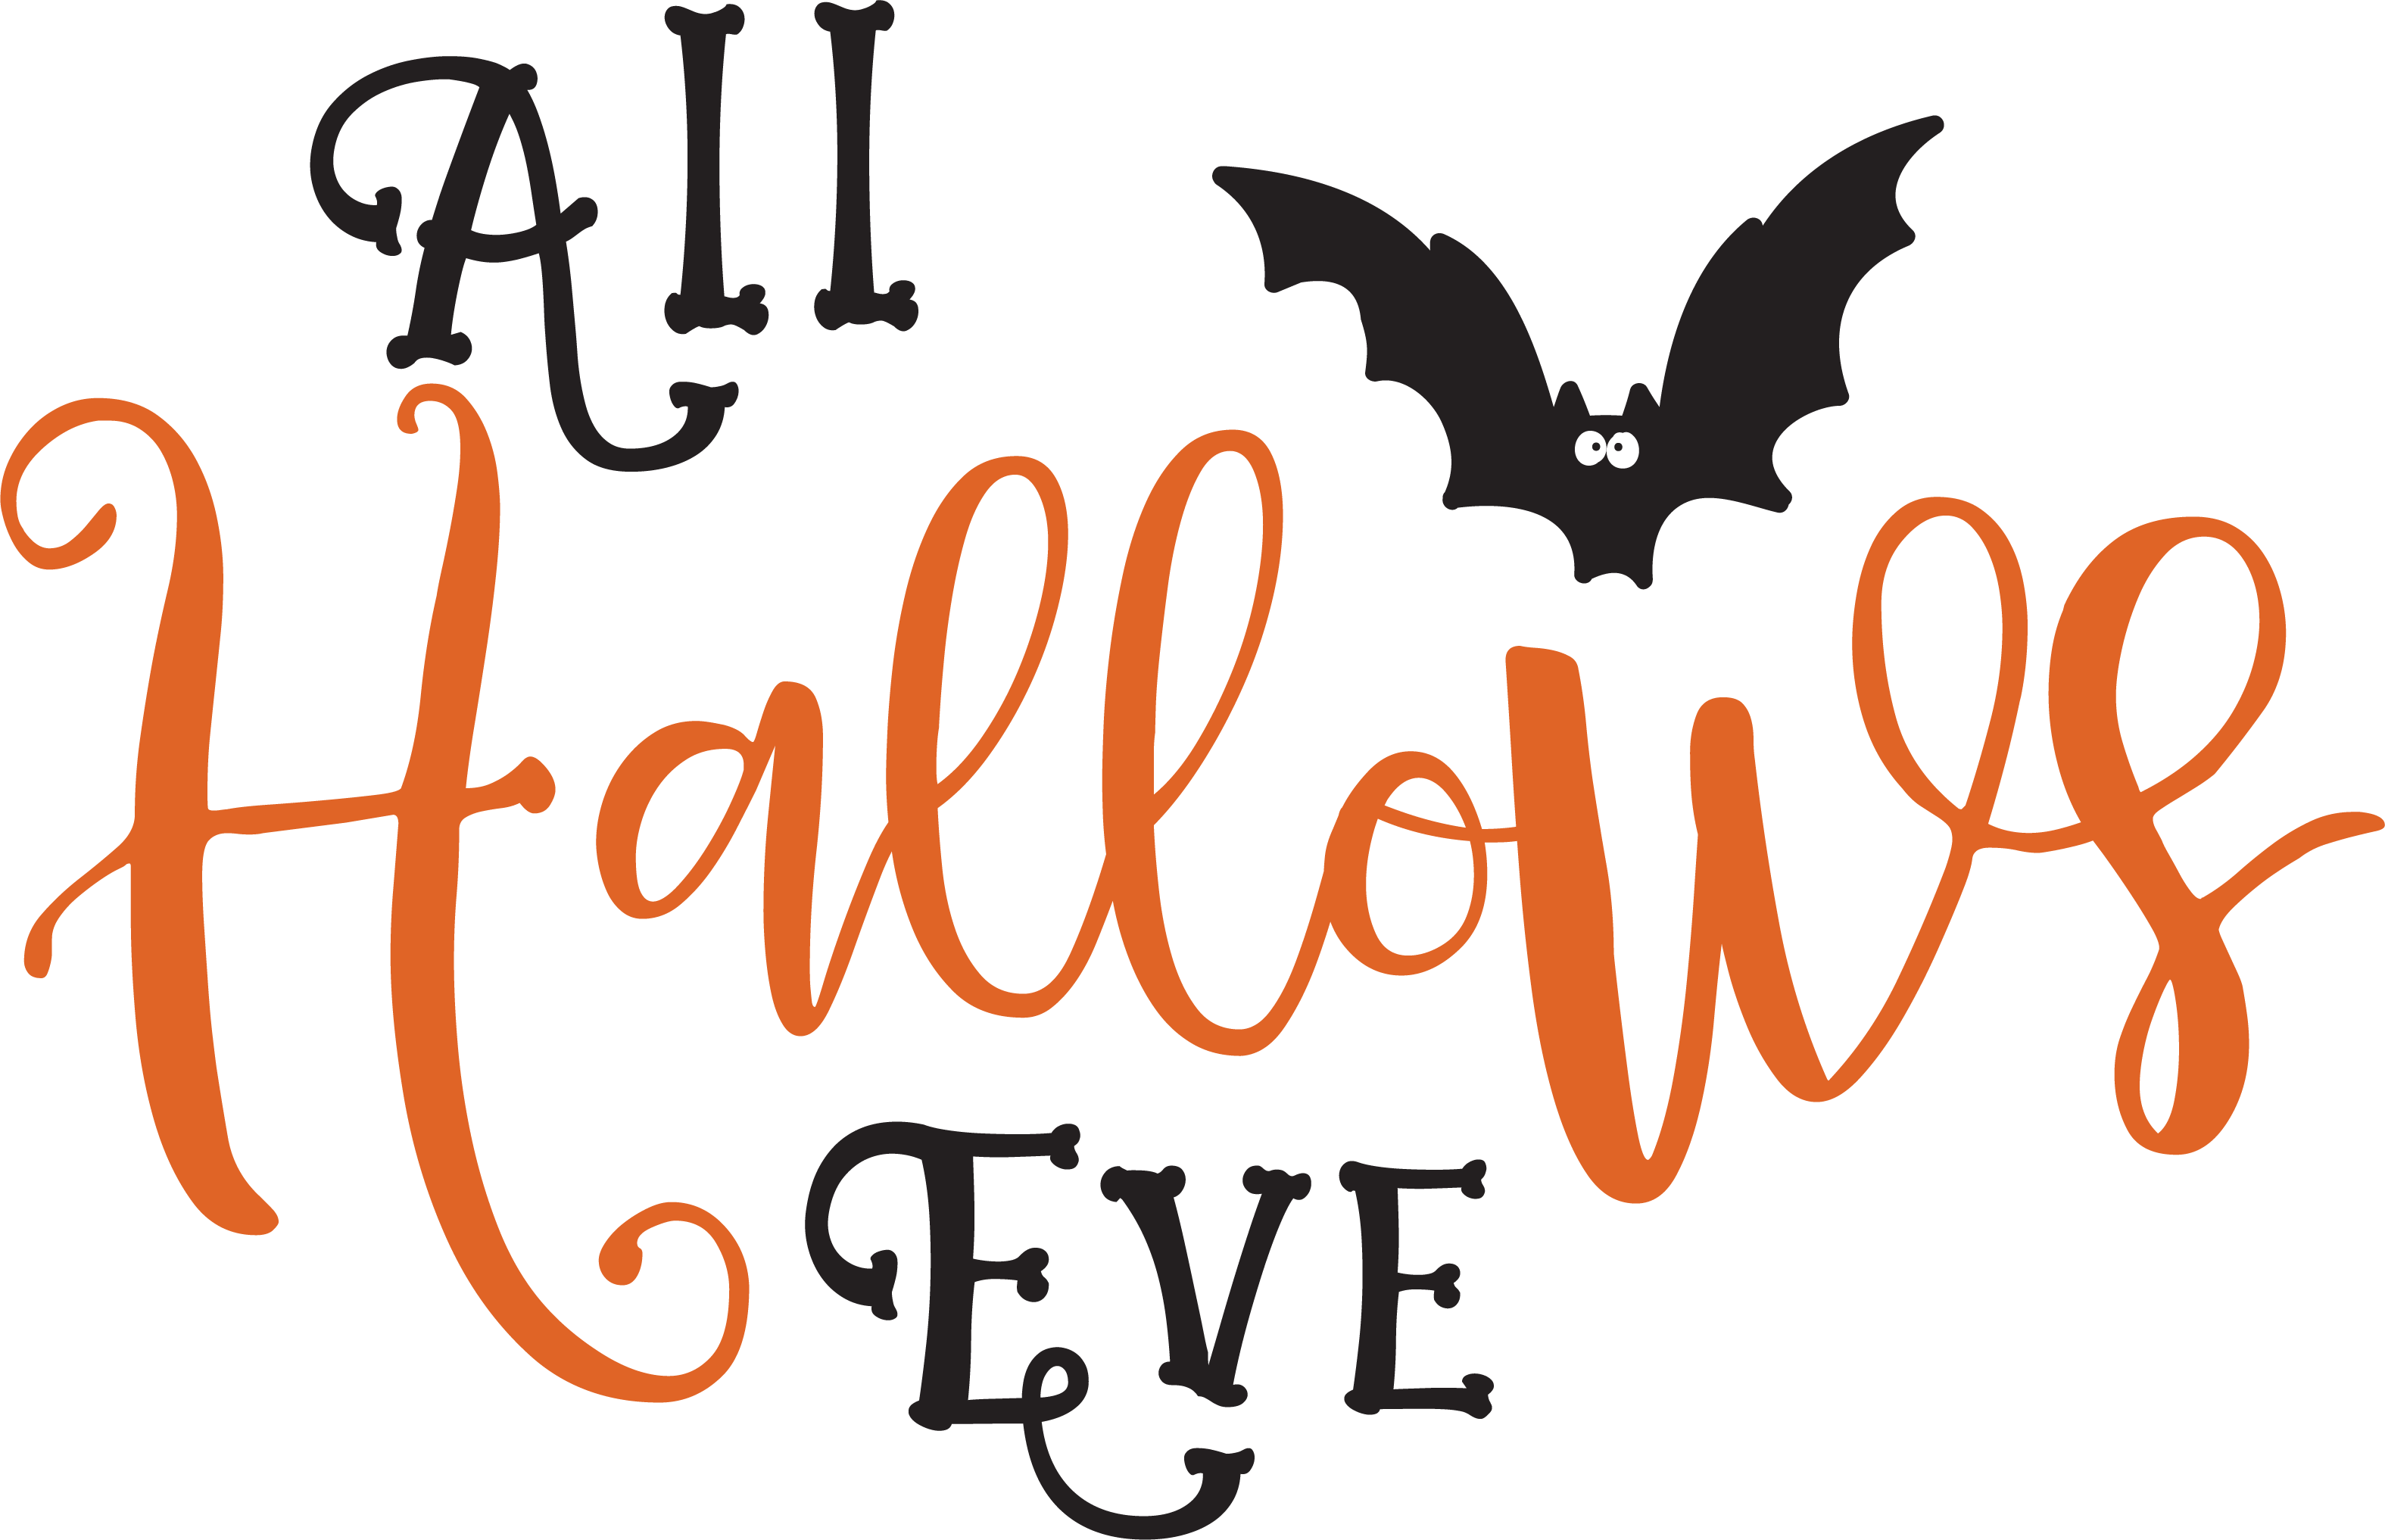 All Hallows Eve SVG Cut File